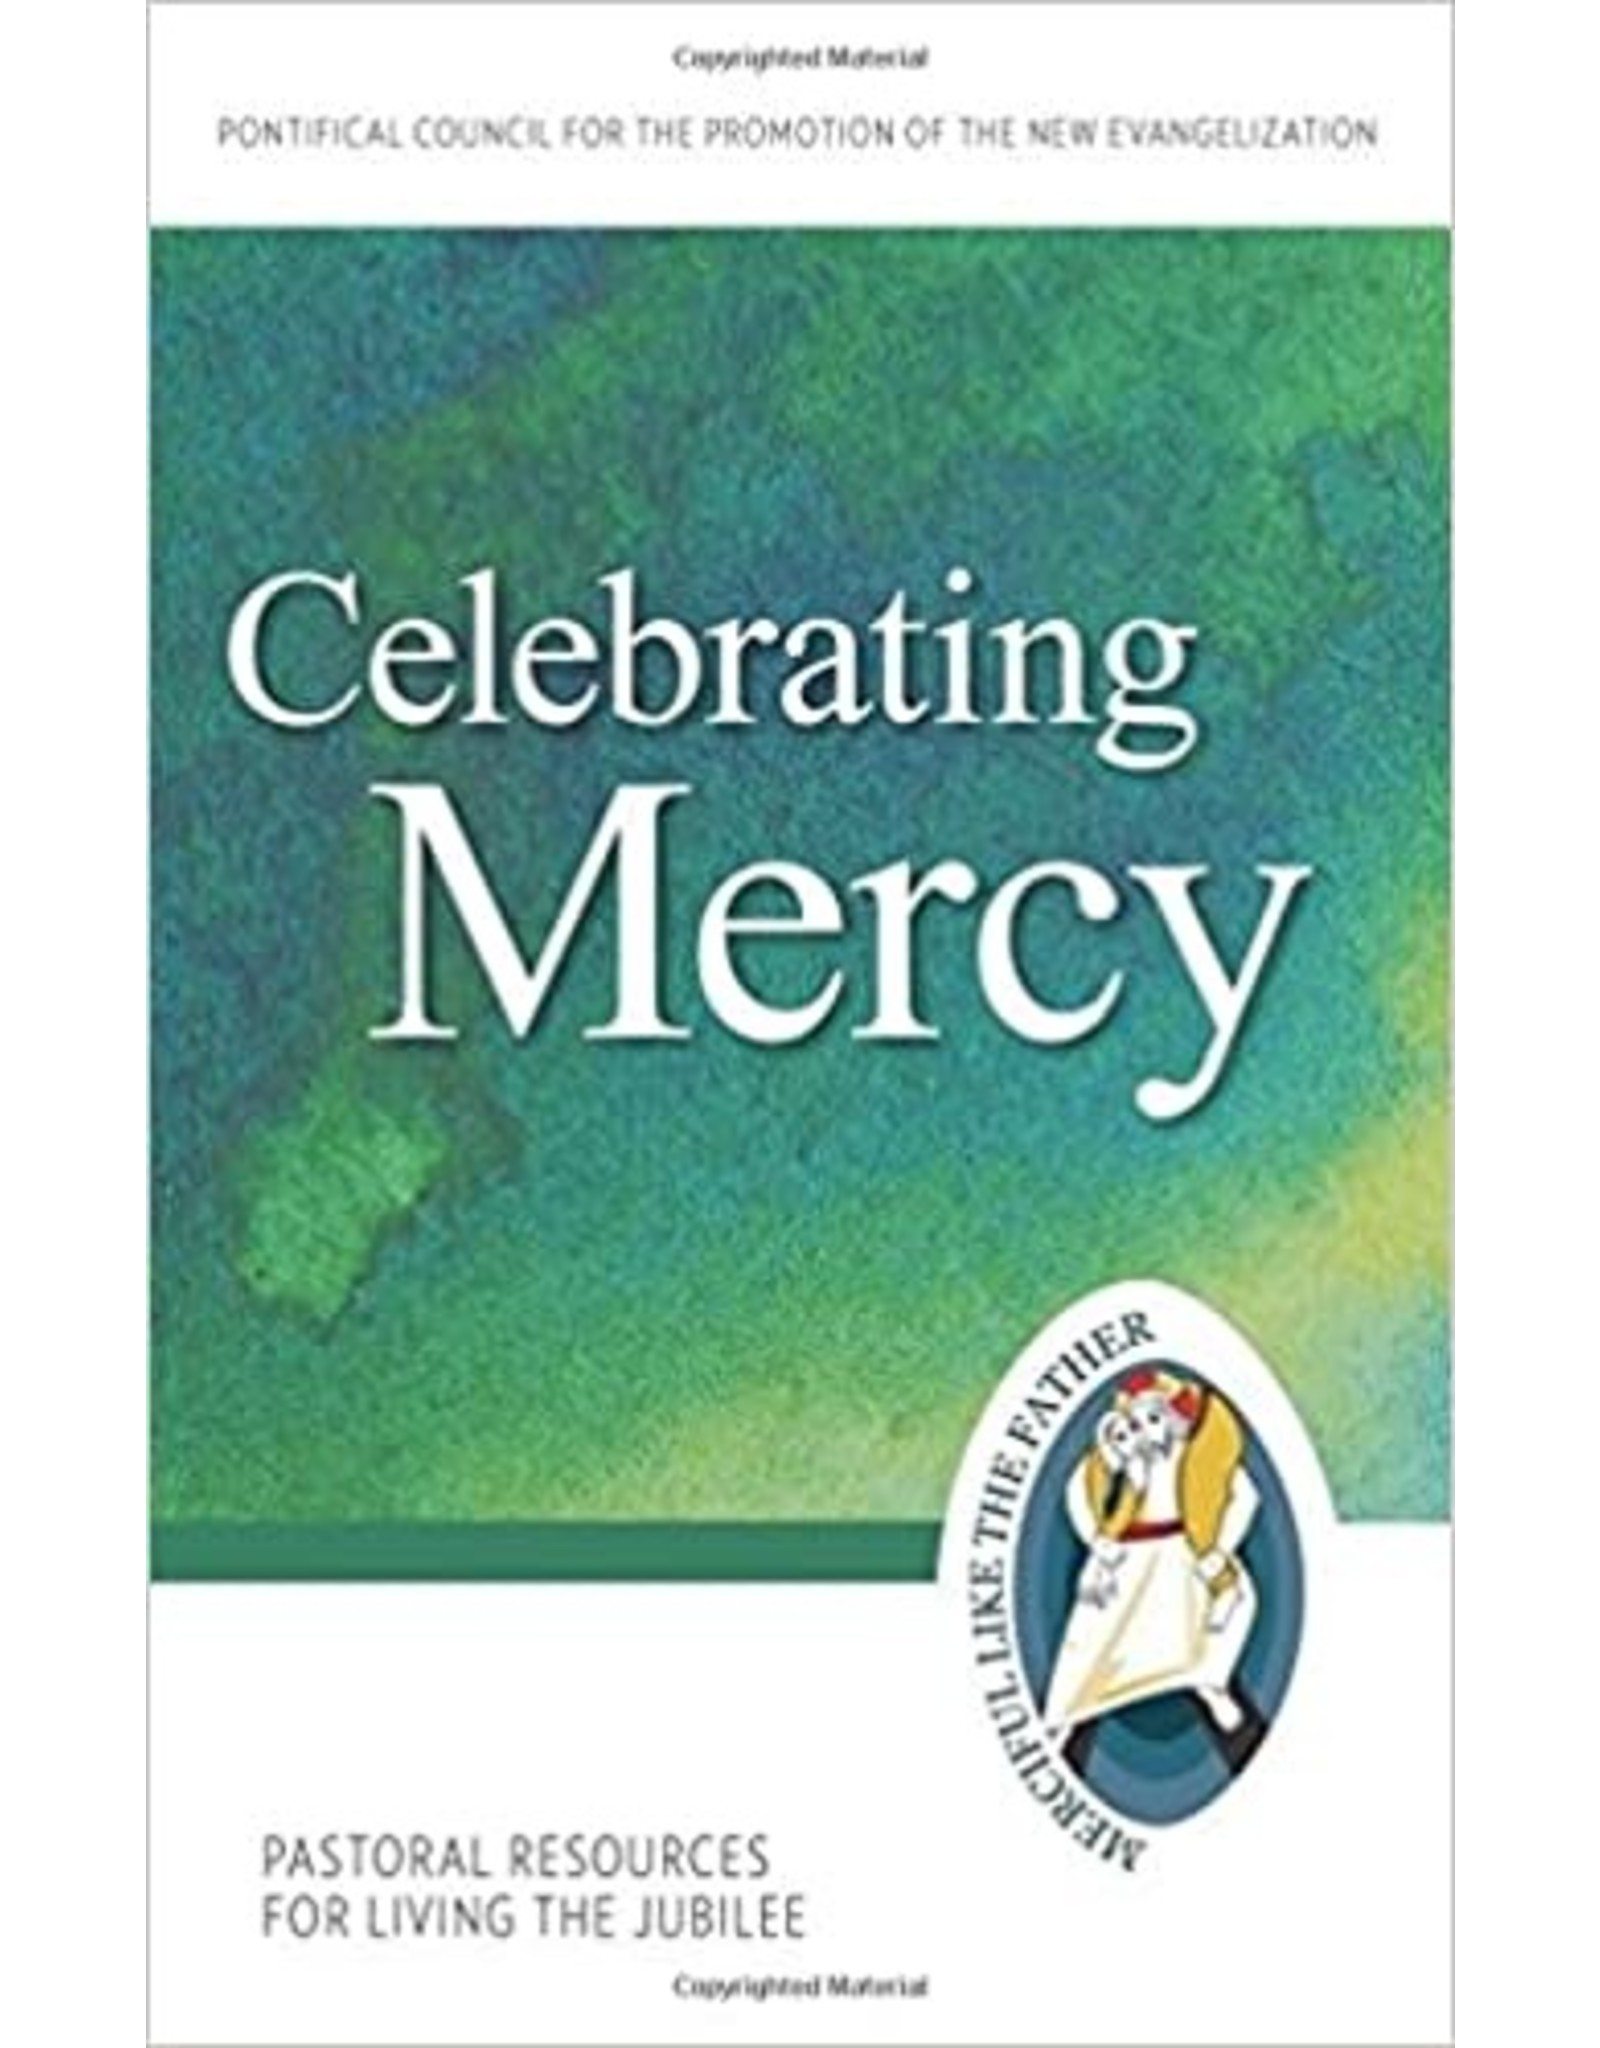 Celebrating Mercy (Pastoral Resources for Living the Jubilee)